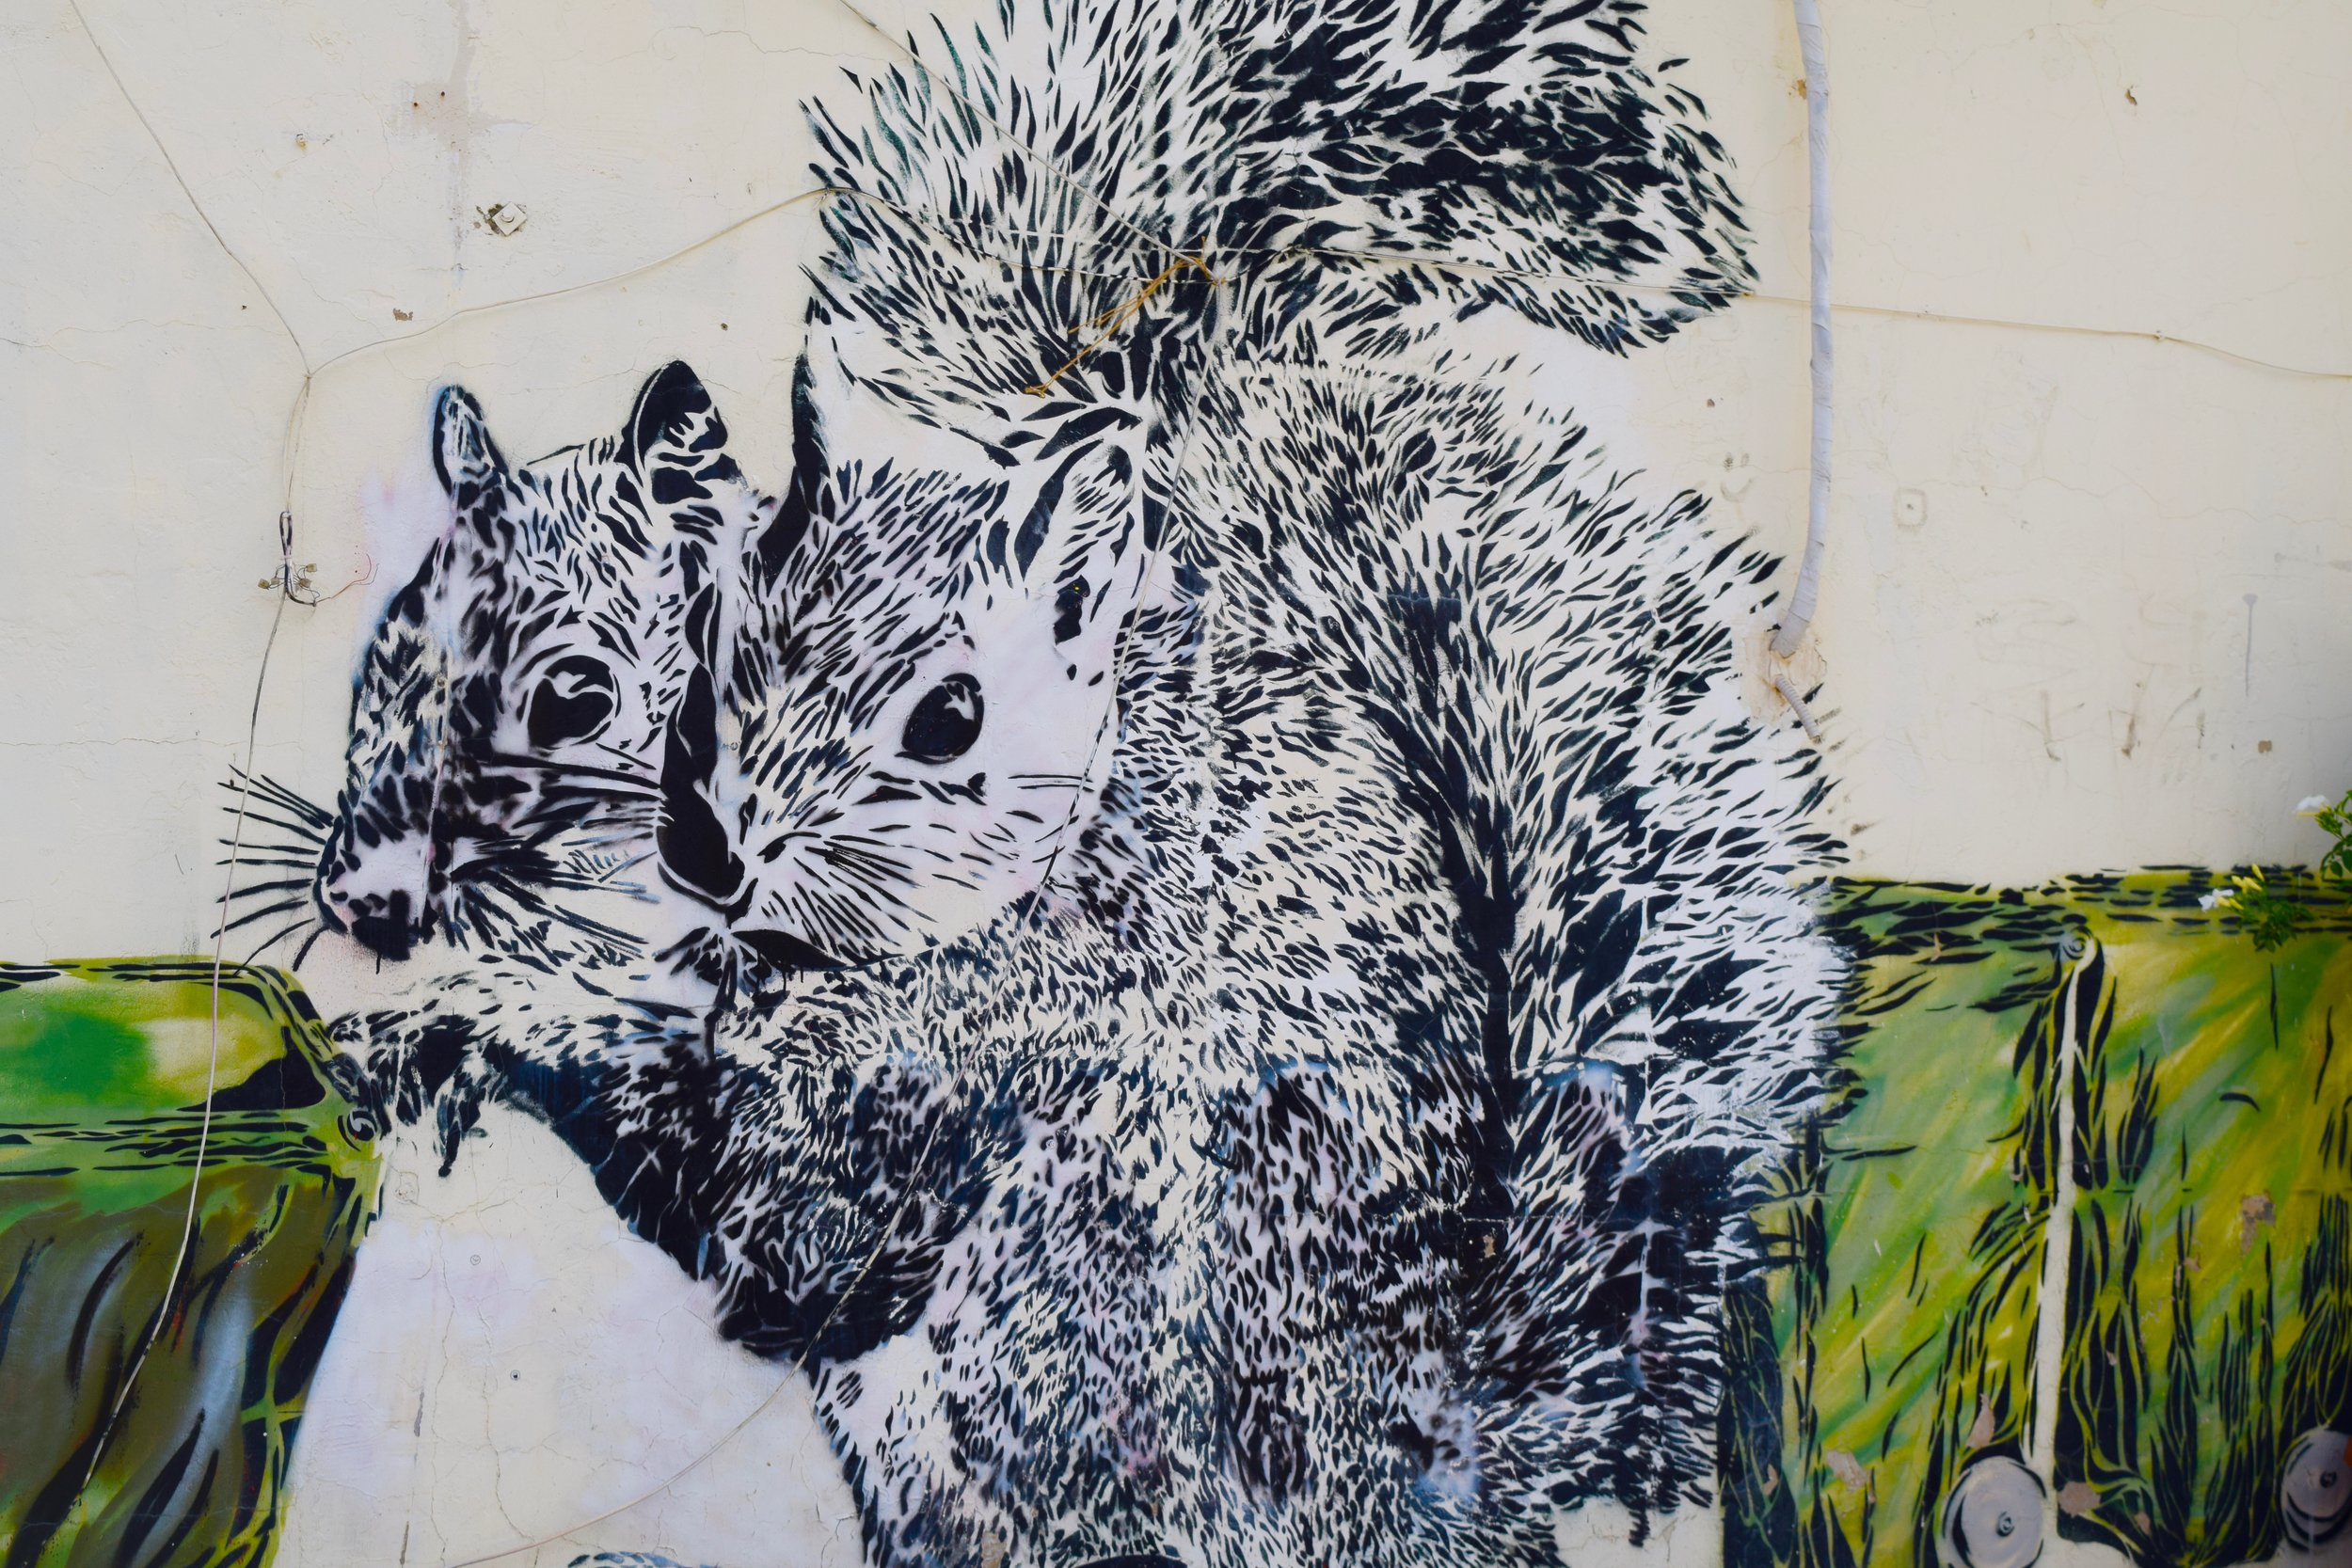 'The Squirrels'